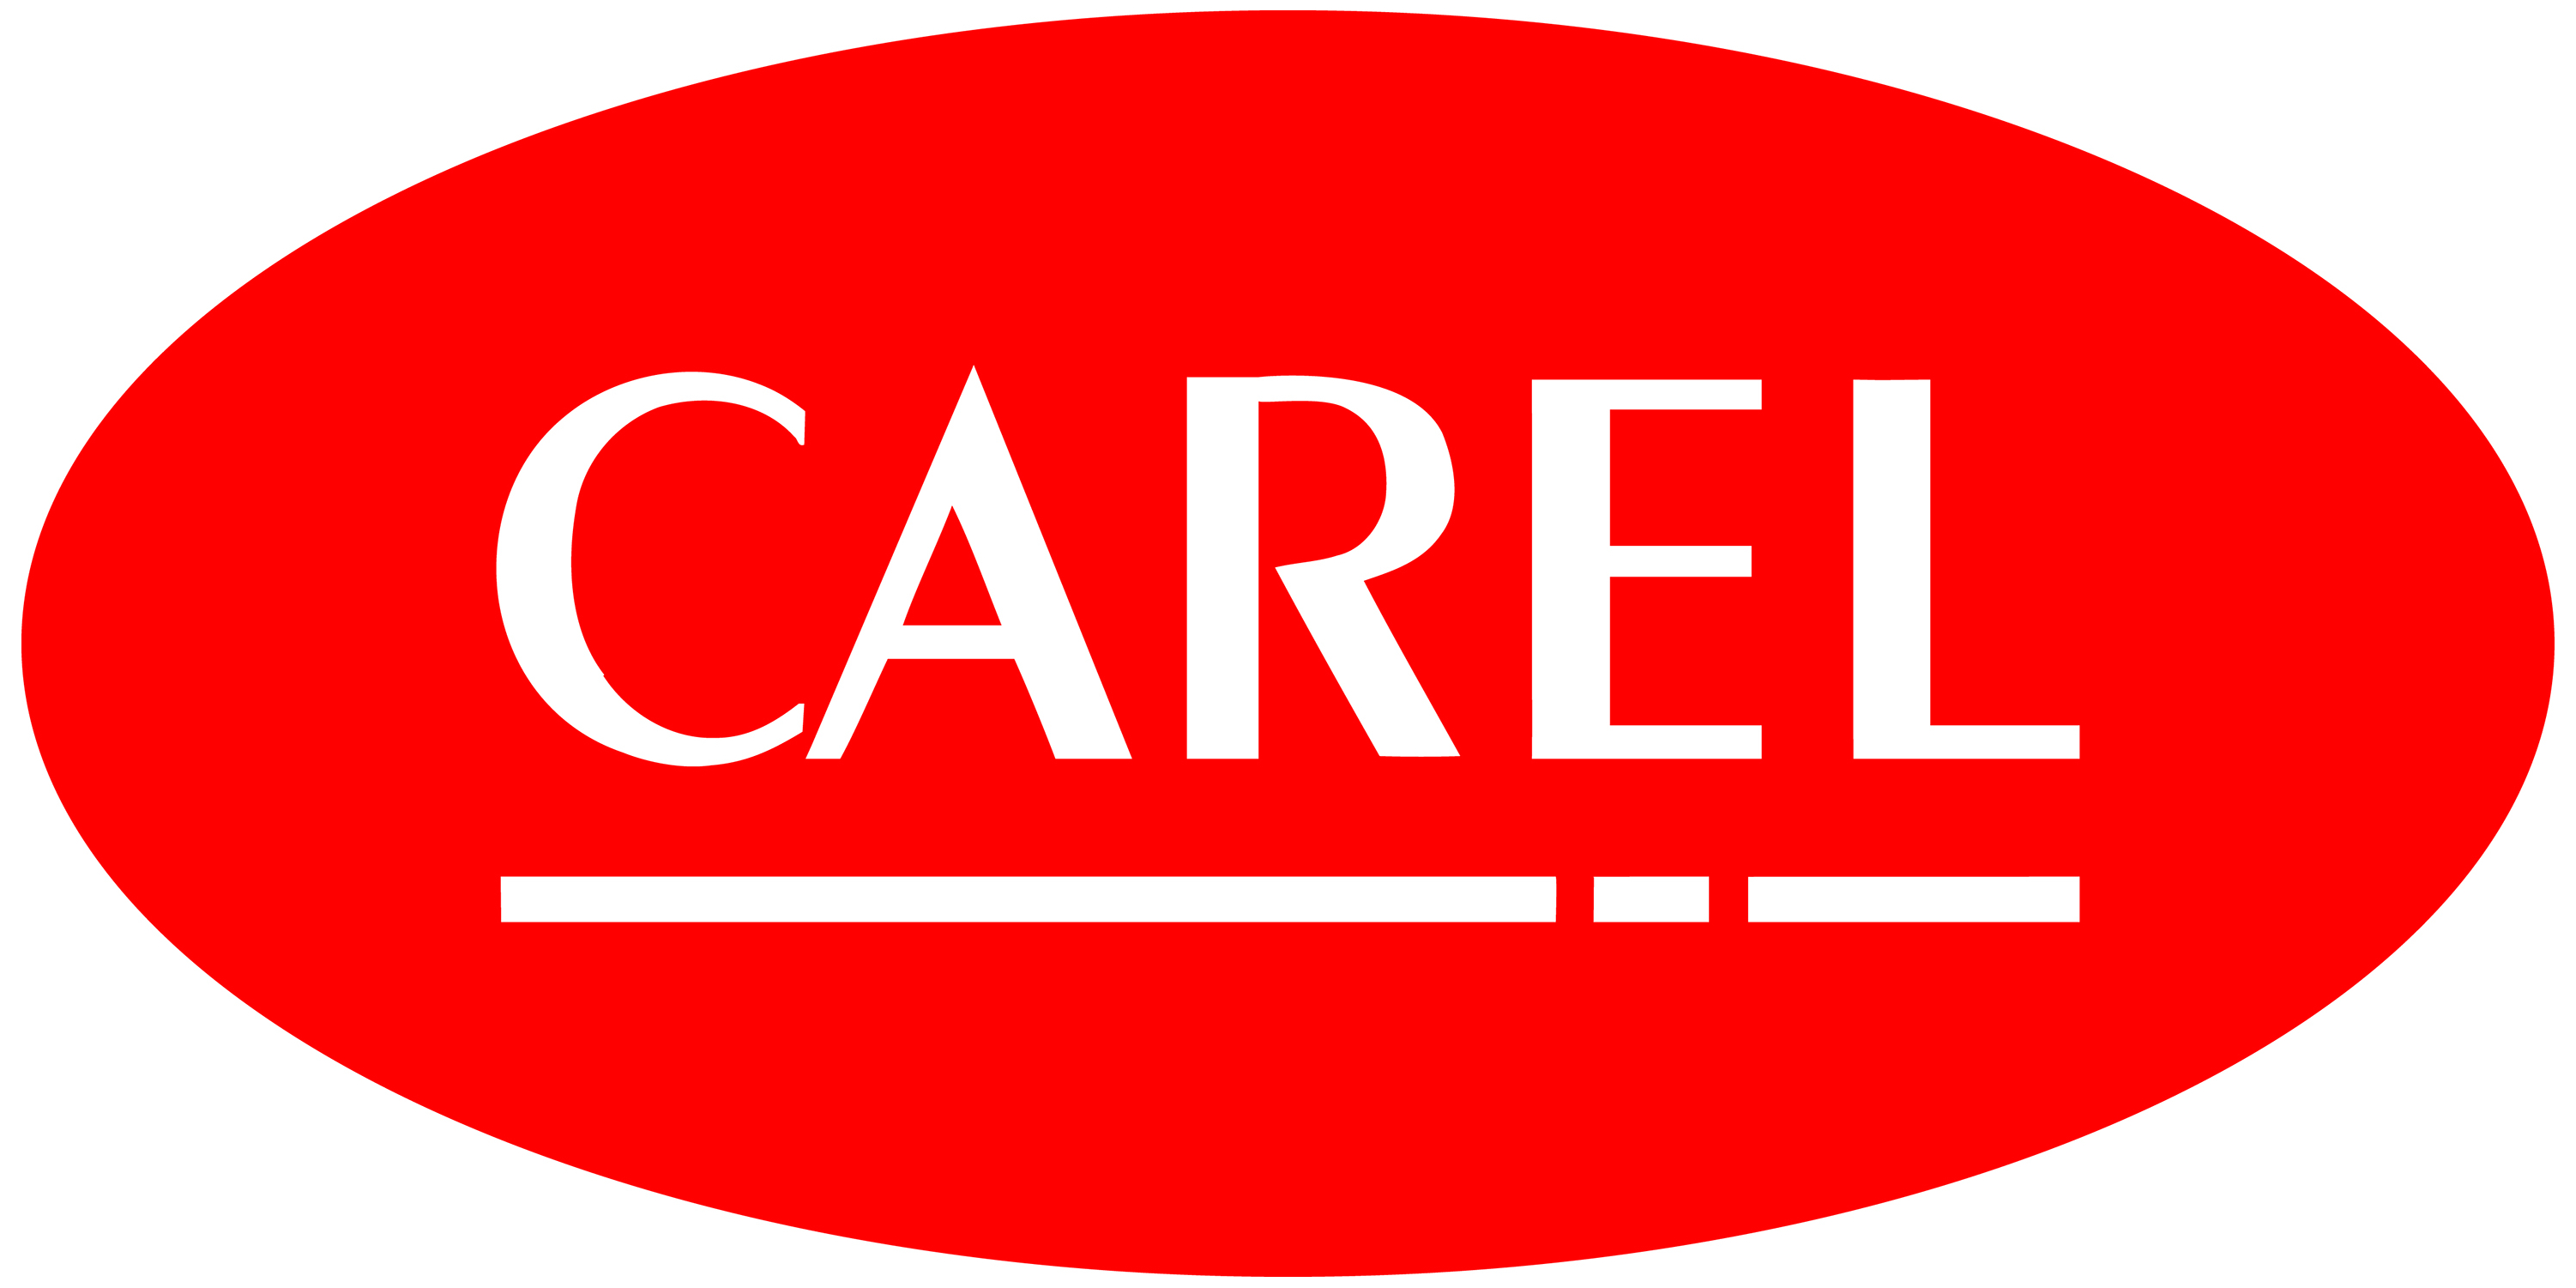 CAREL - Headquarters